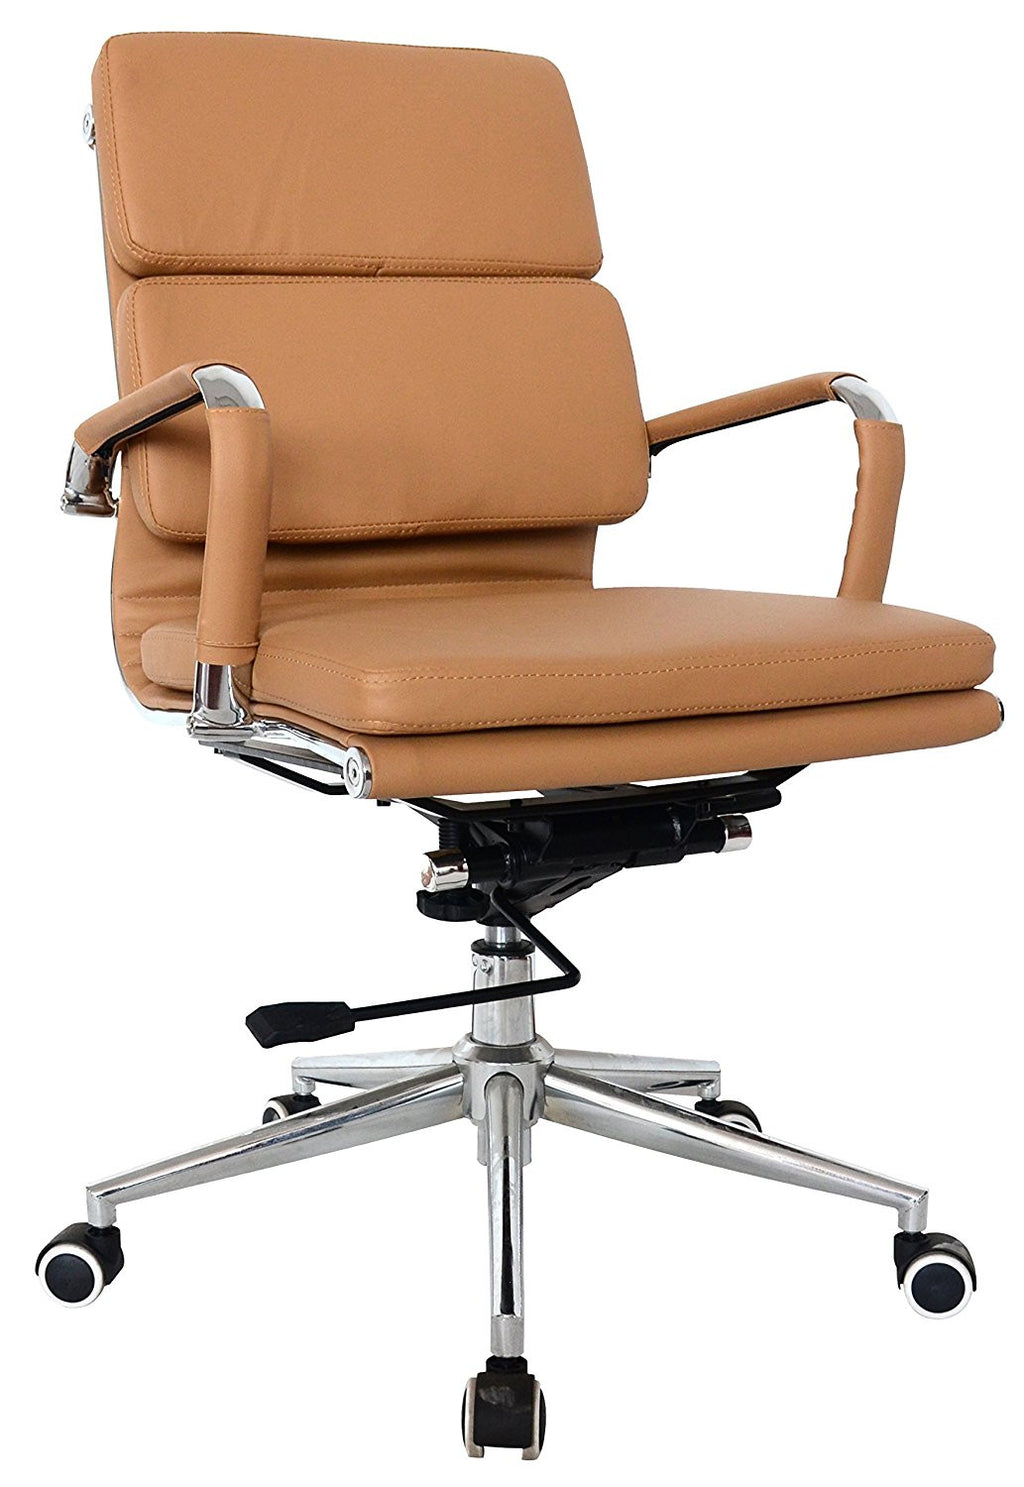 Padded Medium Back Office Chair - Camel Vegan Leather - US Office Elements